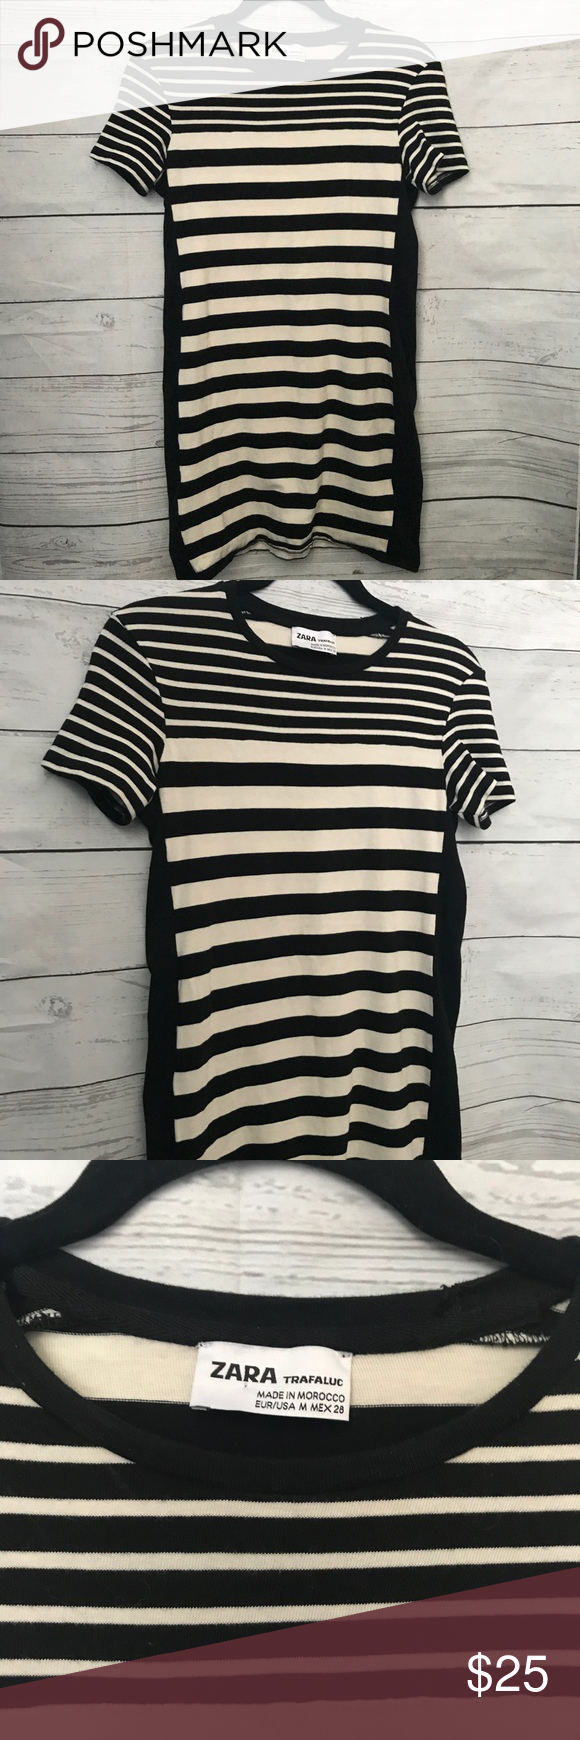 66bb65d4 Zara Cream and Black Striped Knit Dress Zara Cream and Black Striped Knit  Dress size Medium. Never been worn dress from Zara! Black and cream colored  ...